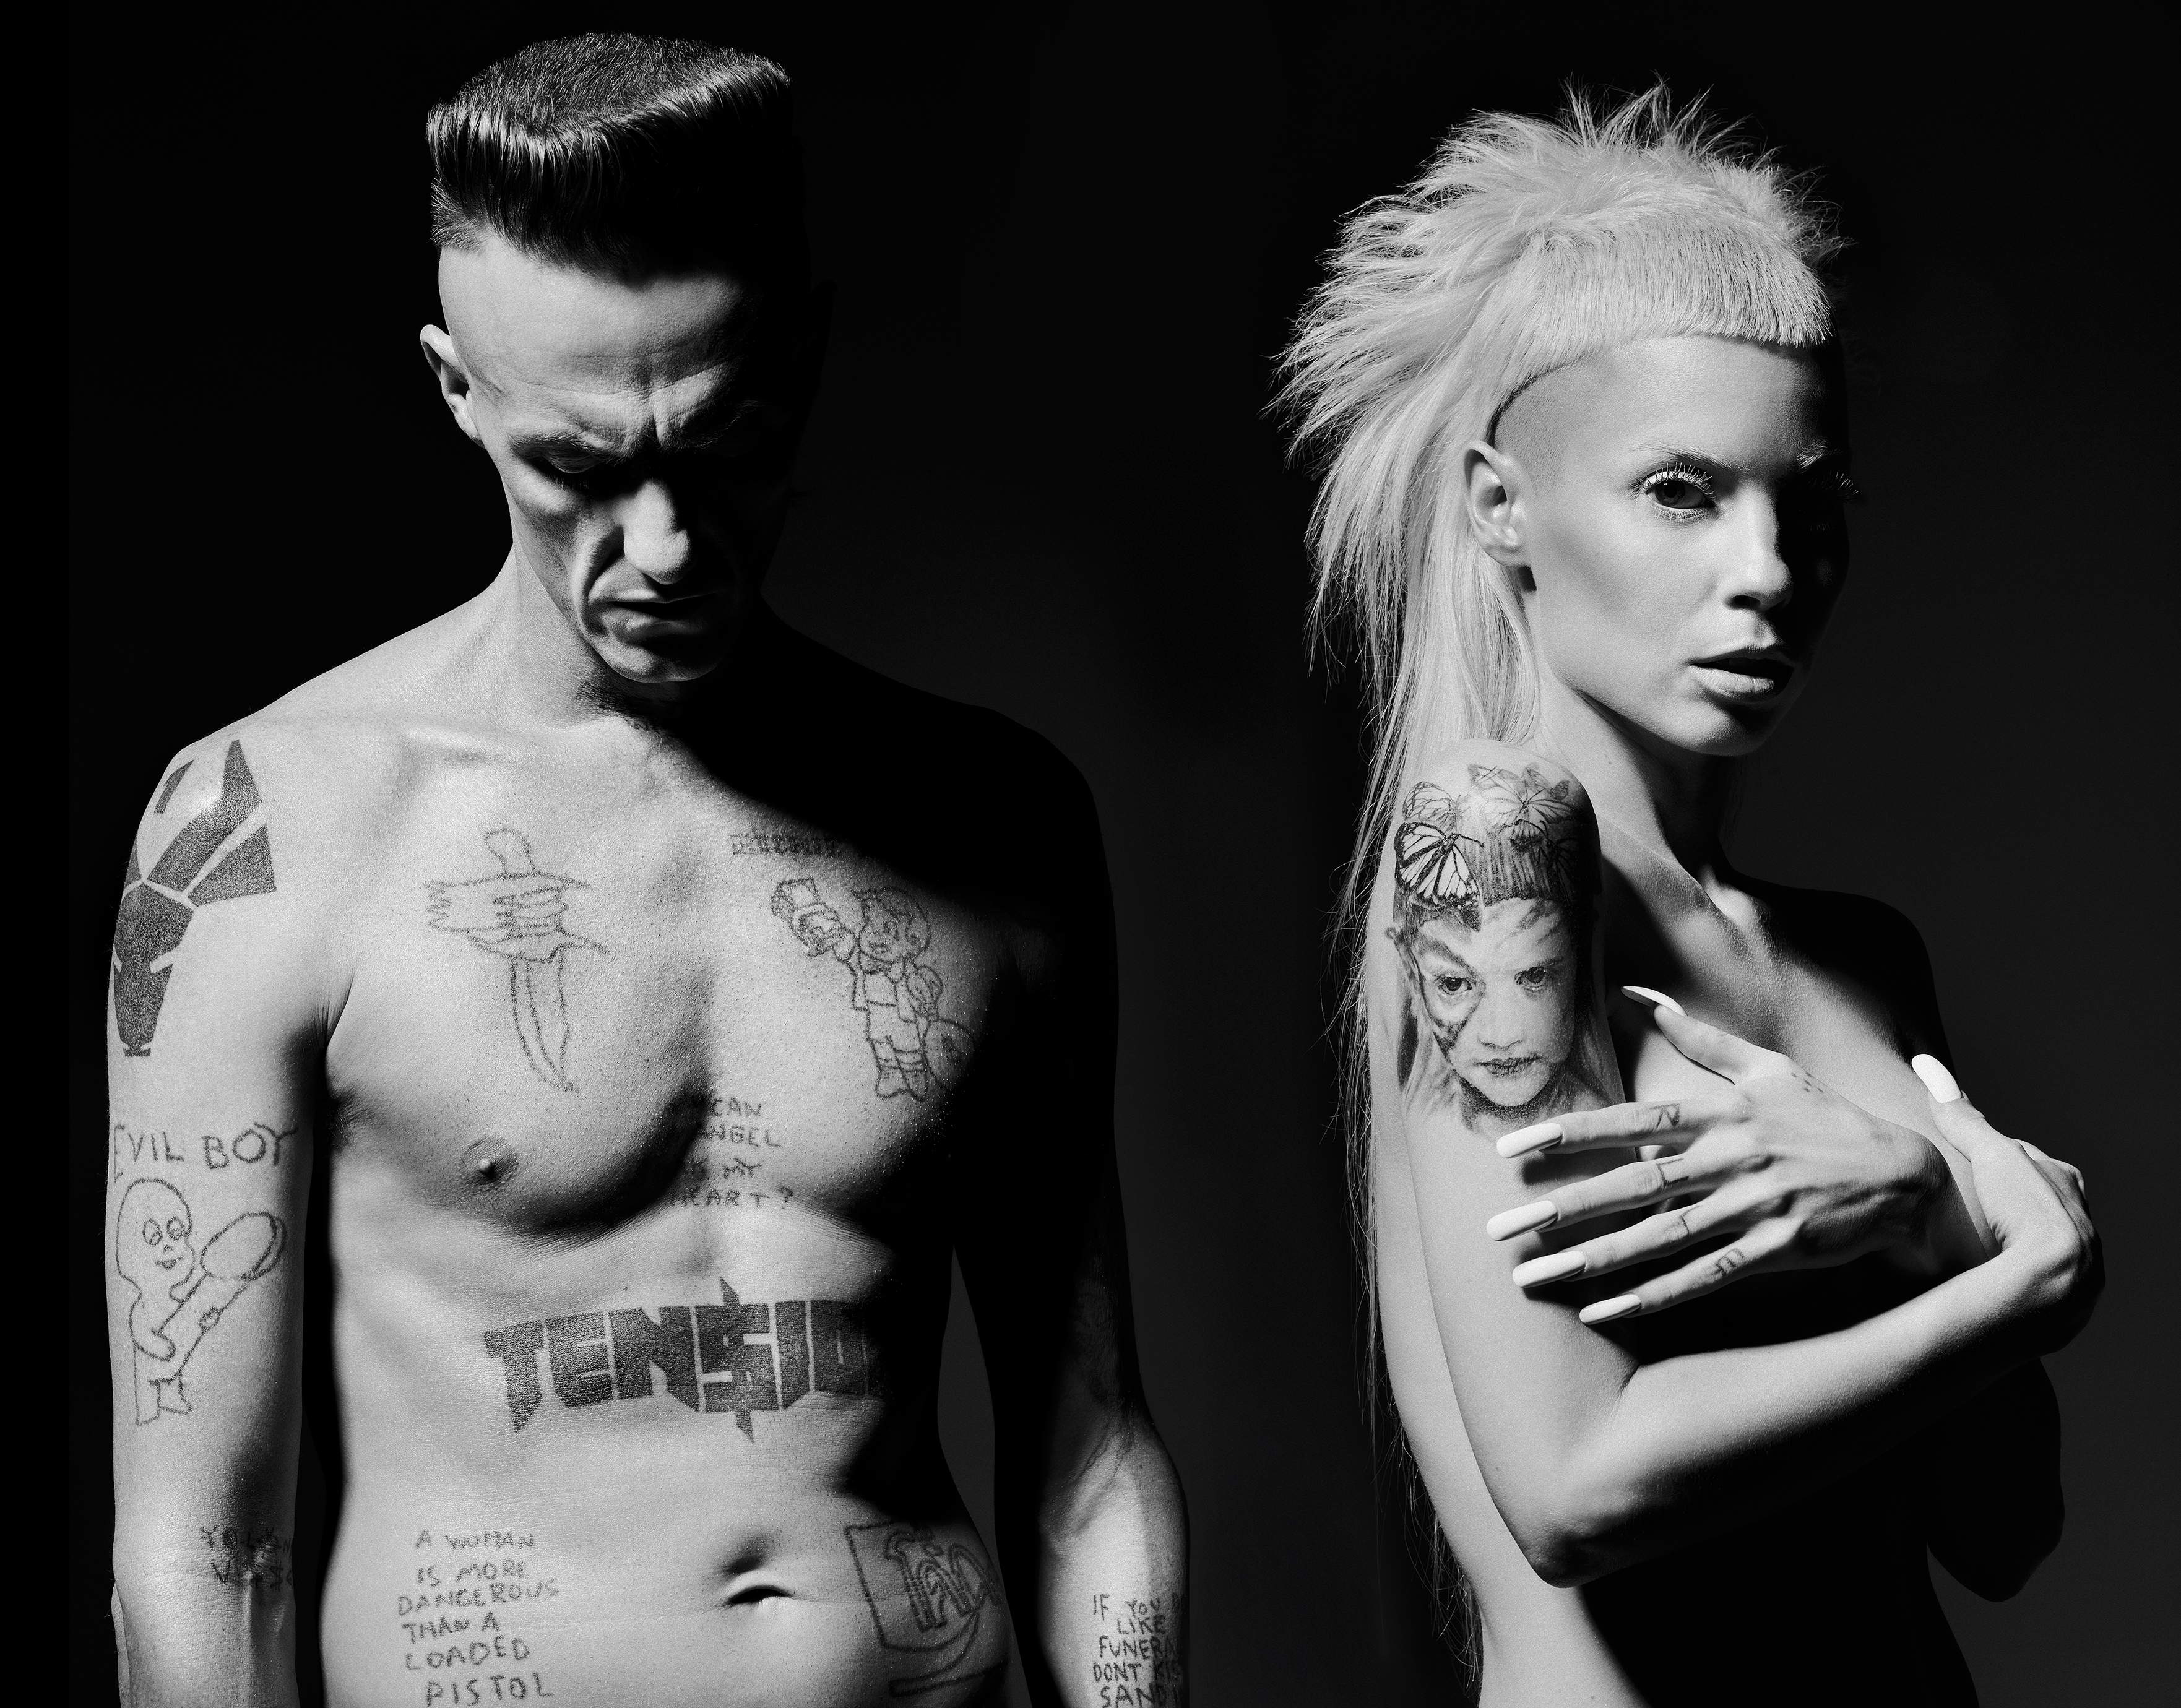 DieAntwoord_Press1 FM4 Frequency